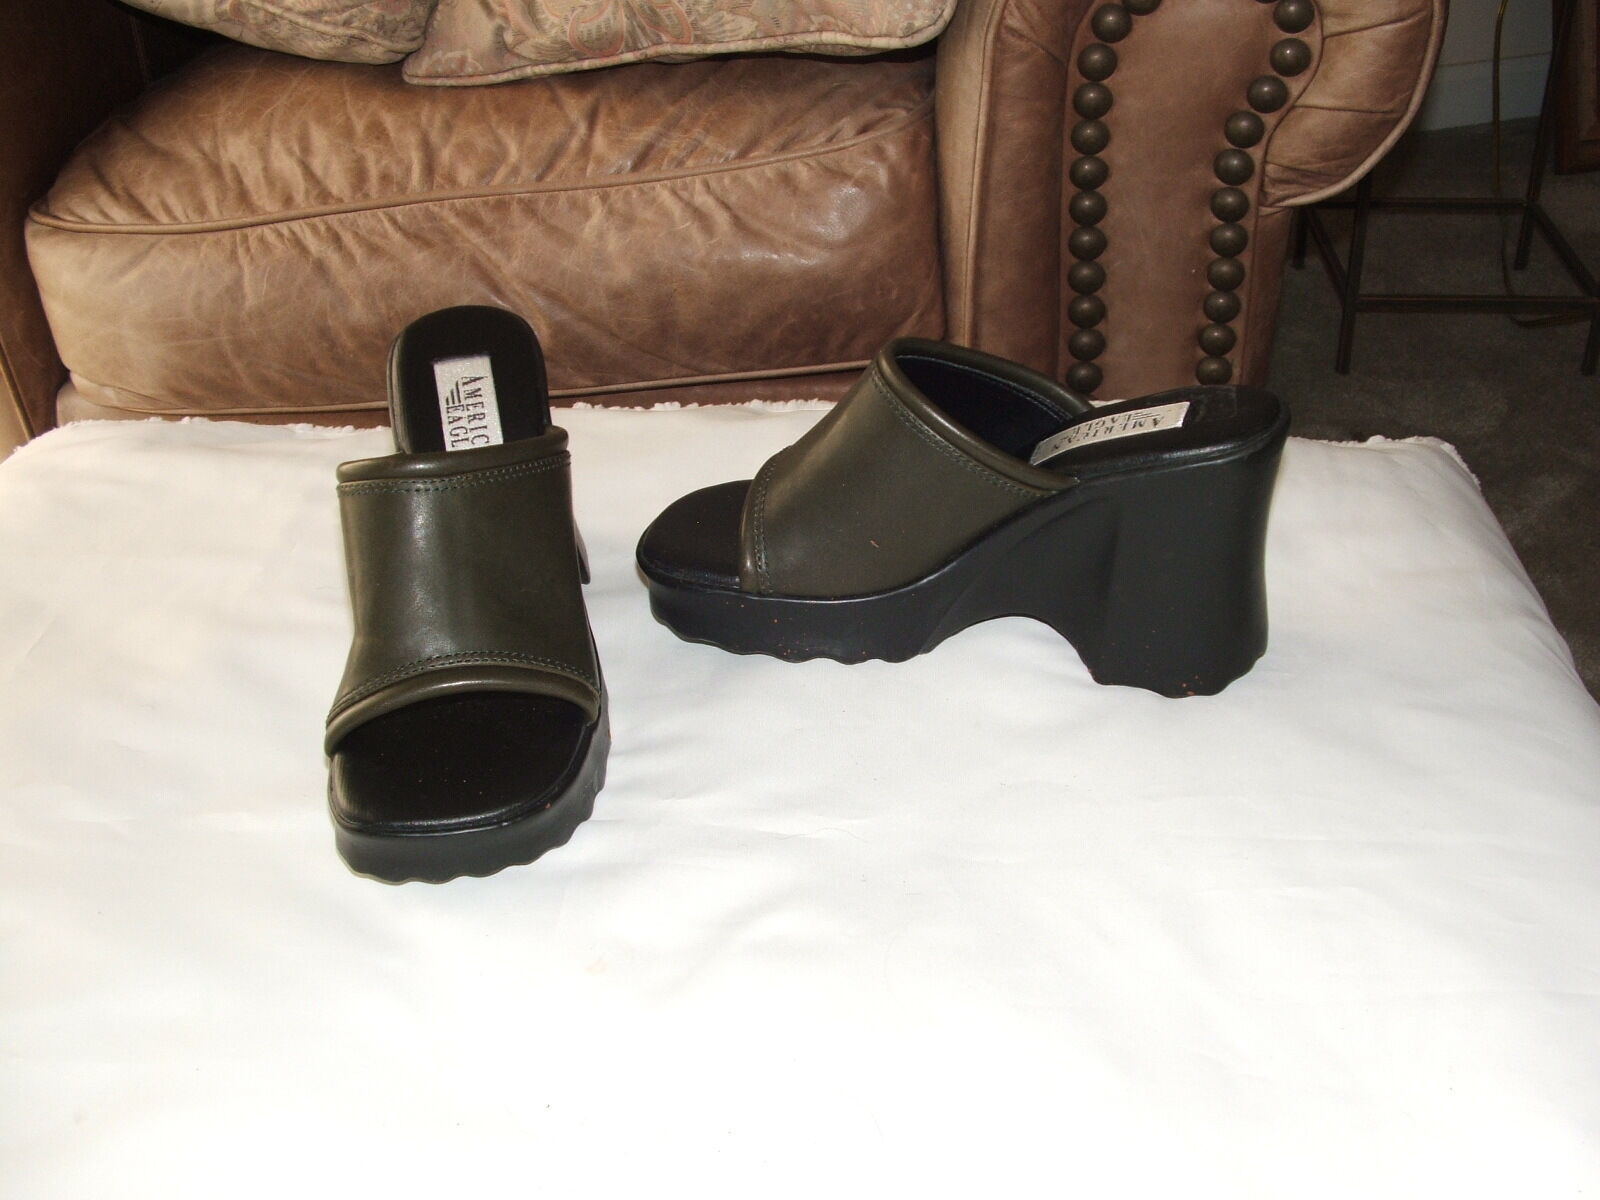 new  retro AMERICAN EAGLE dark olive  slide shoes size 5.5 m